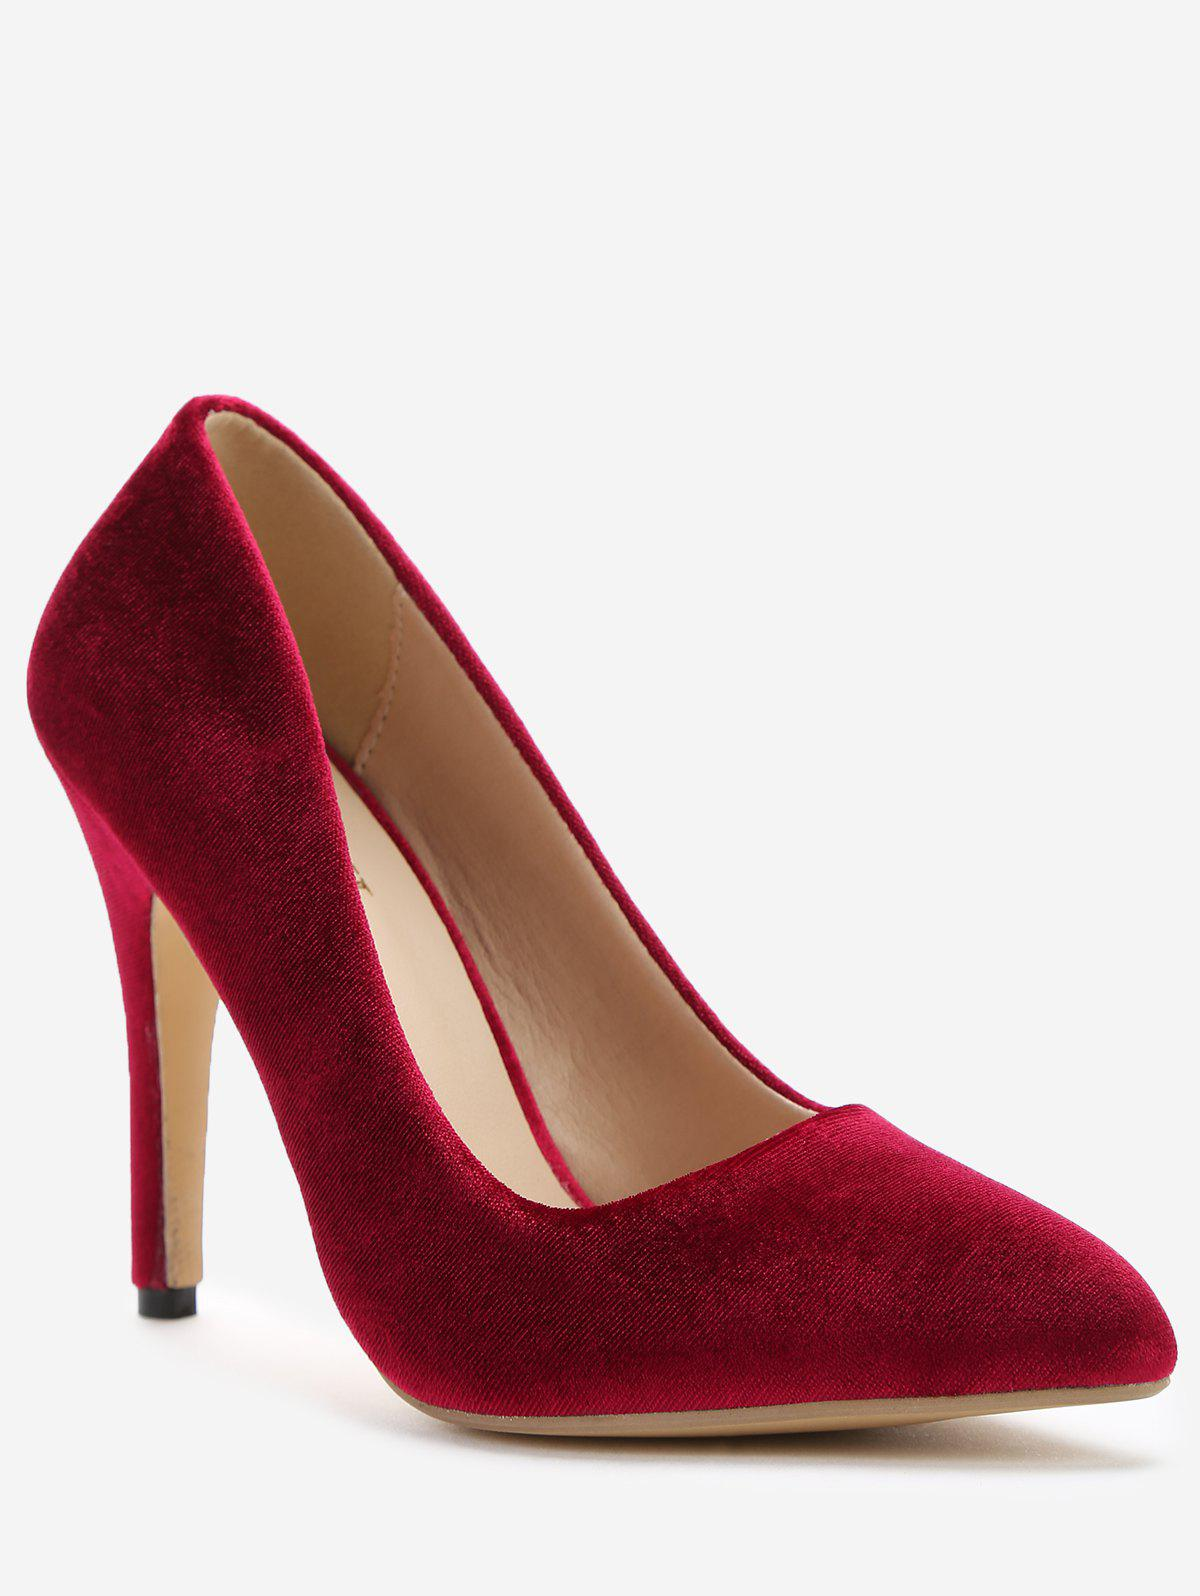 New Slip-on Stiletto Heel Suede Pumps